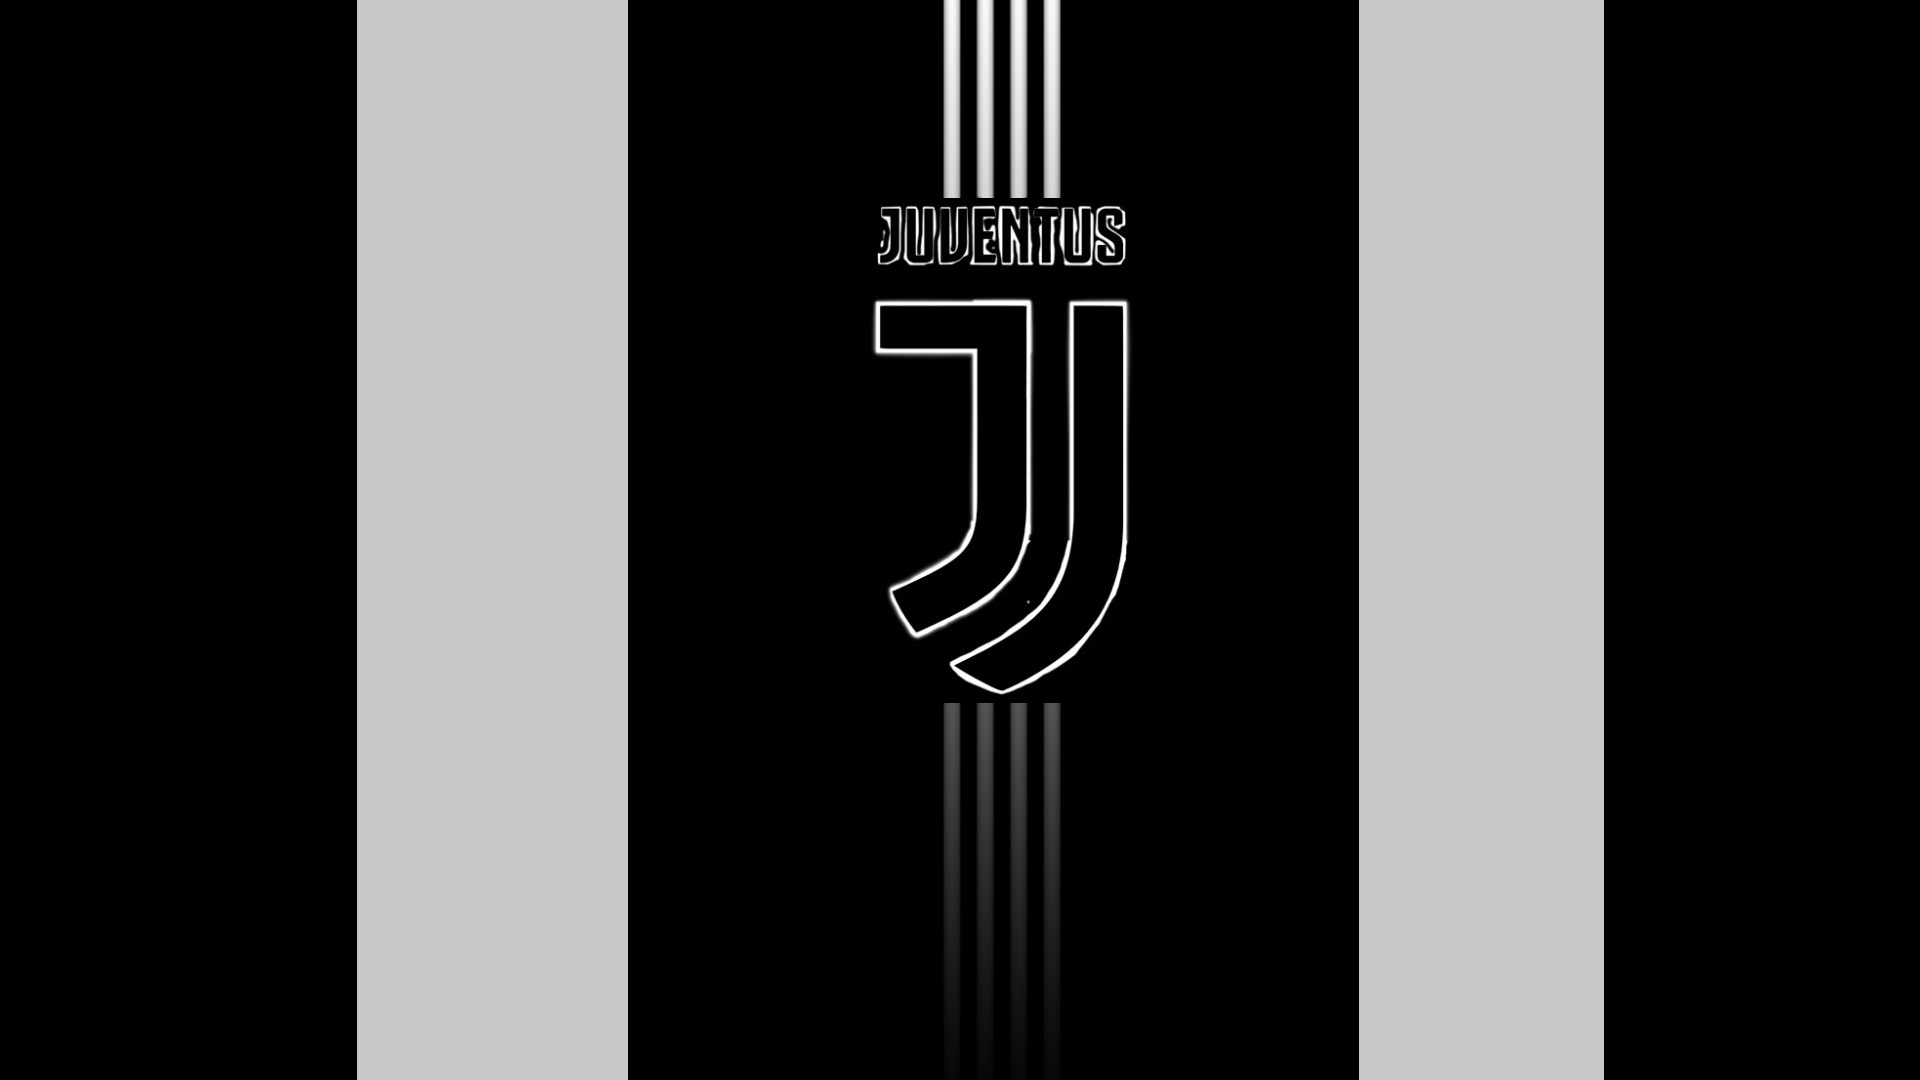 juventus hd wallpaper posted by ethan sellers juventus hd wallpaper posted by ethan